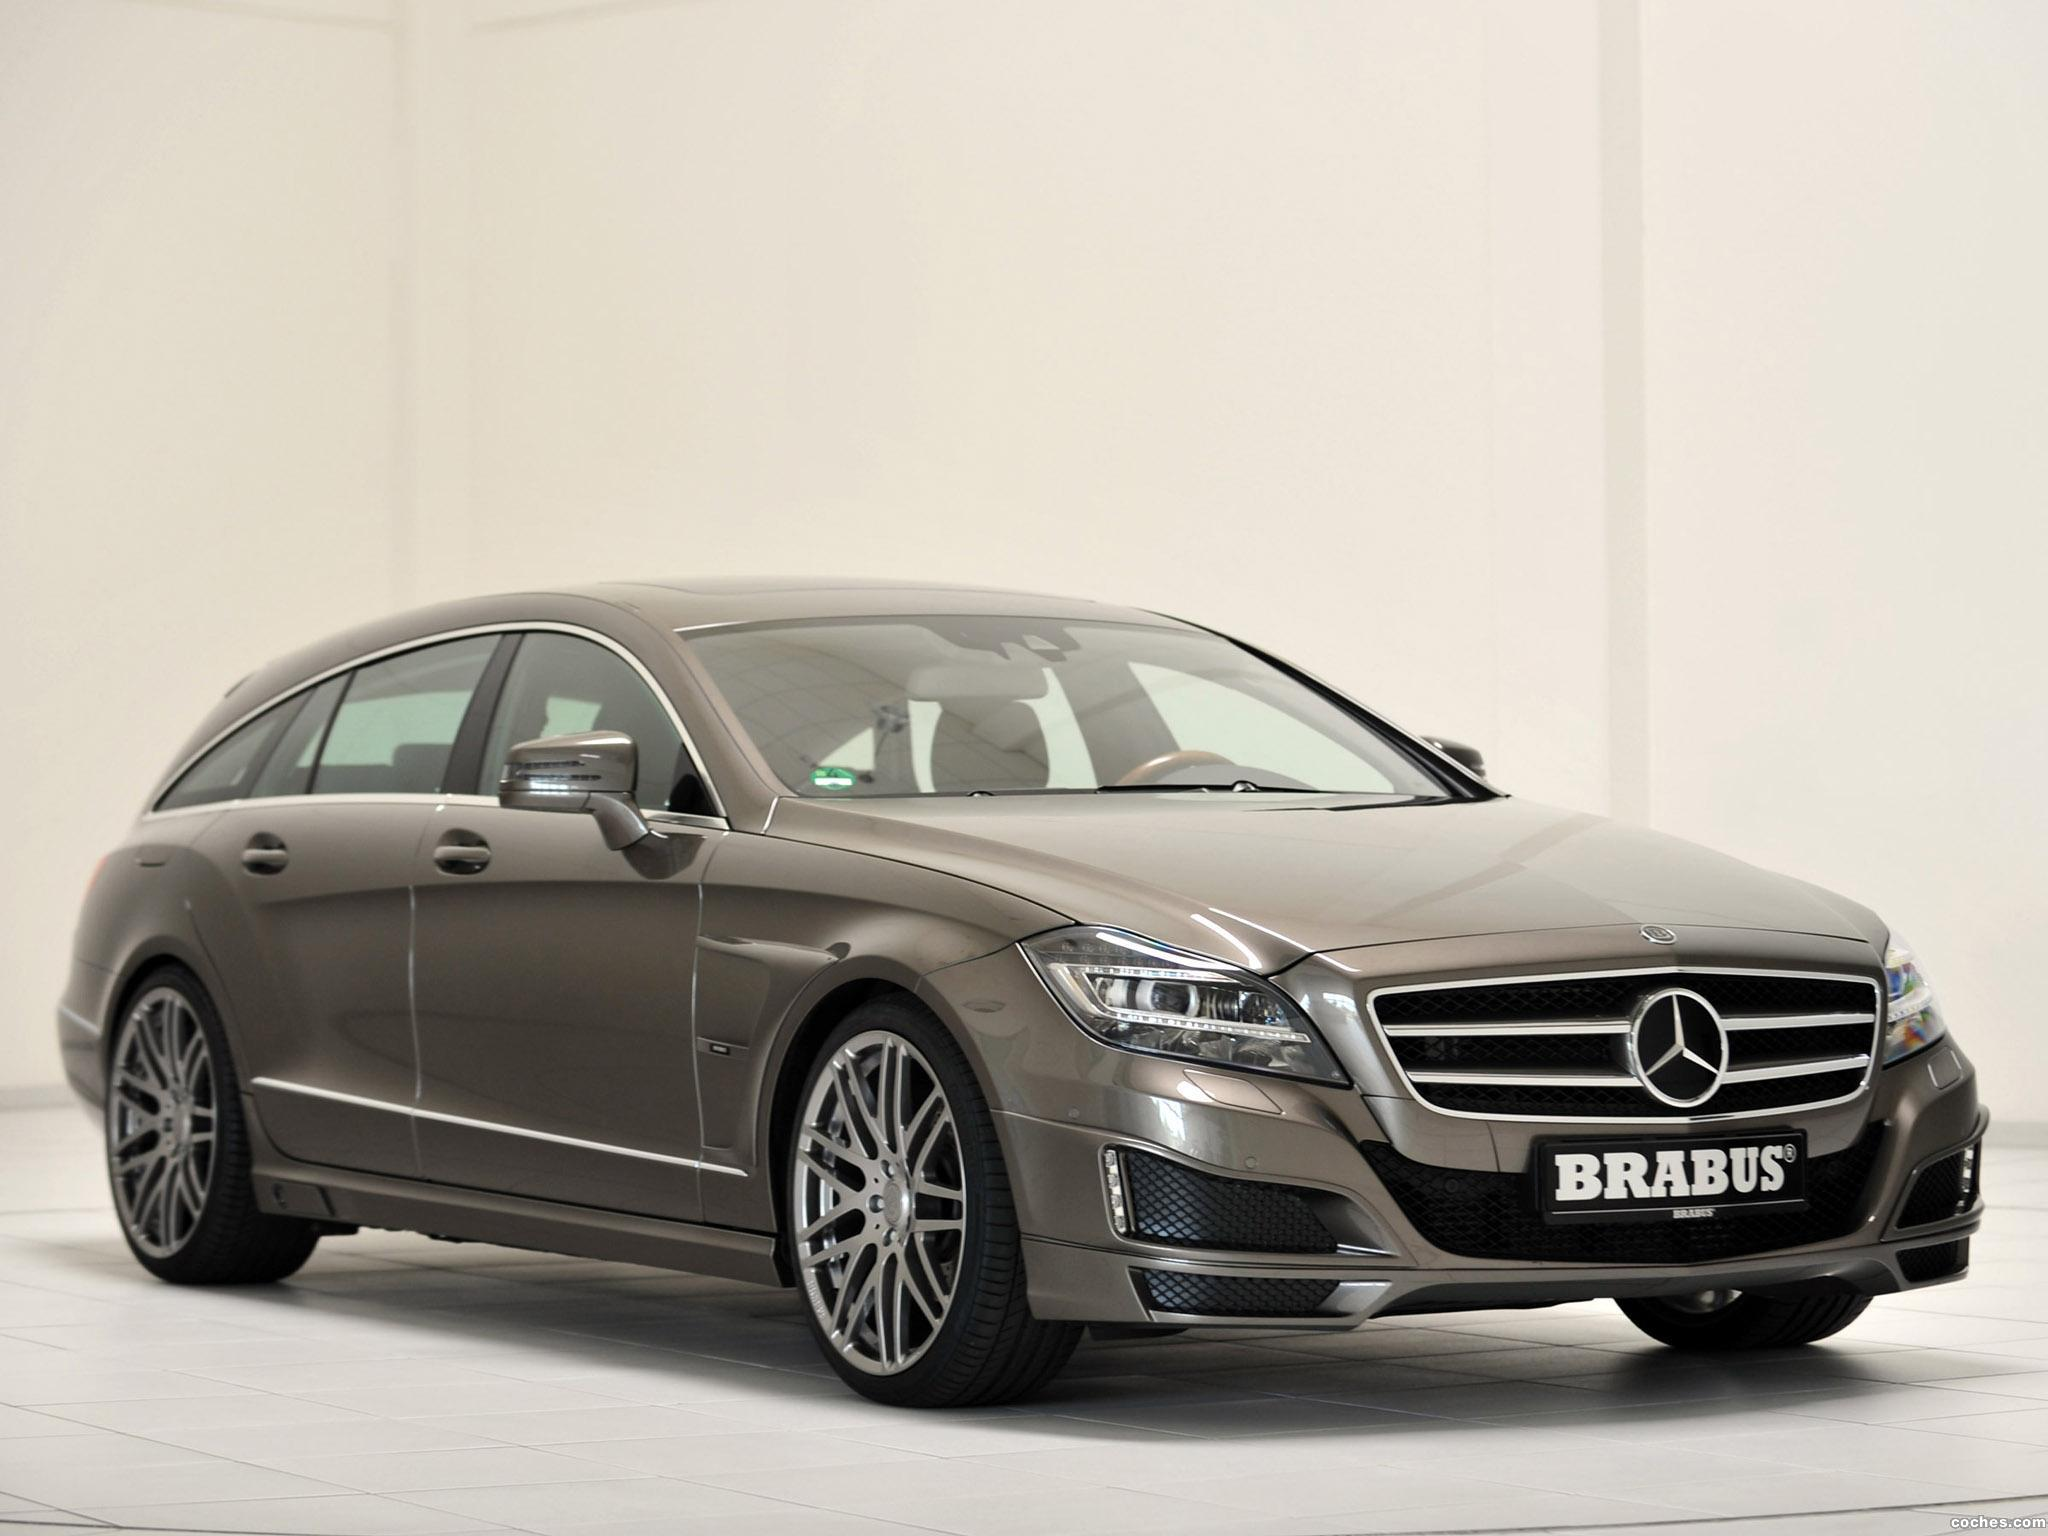 Foto 8 de Mercedes Brabus CLS Shooting Brake X218 2012